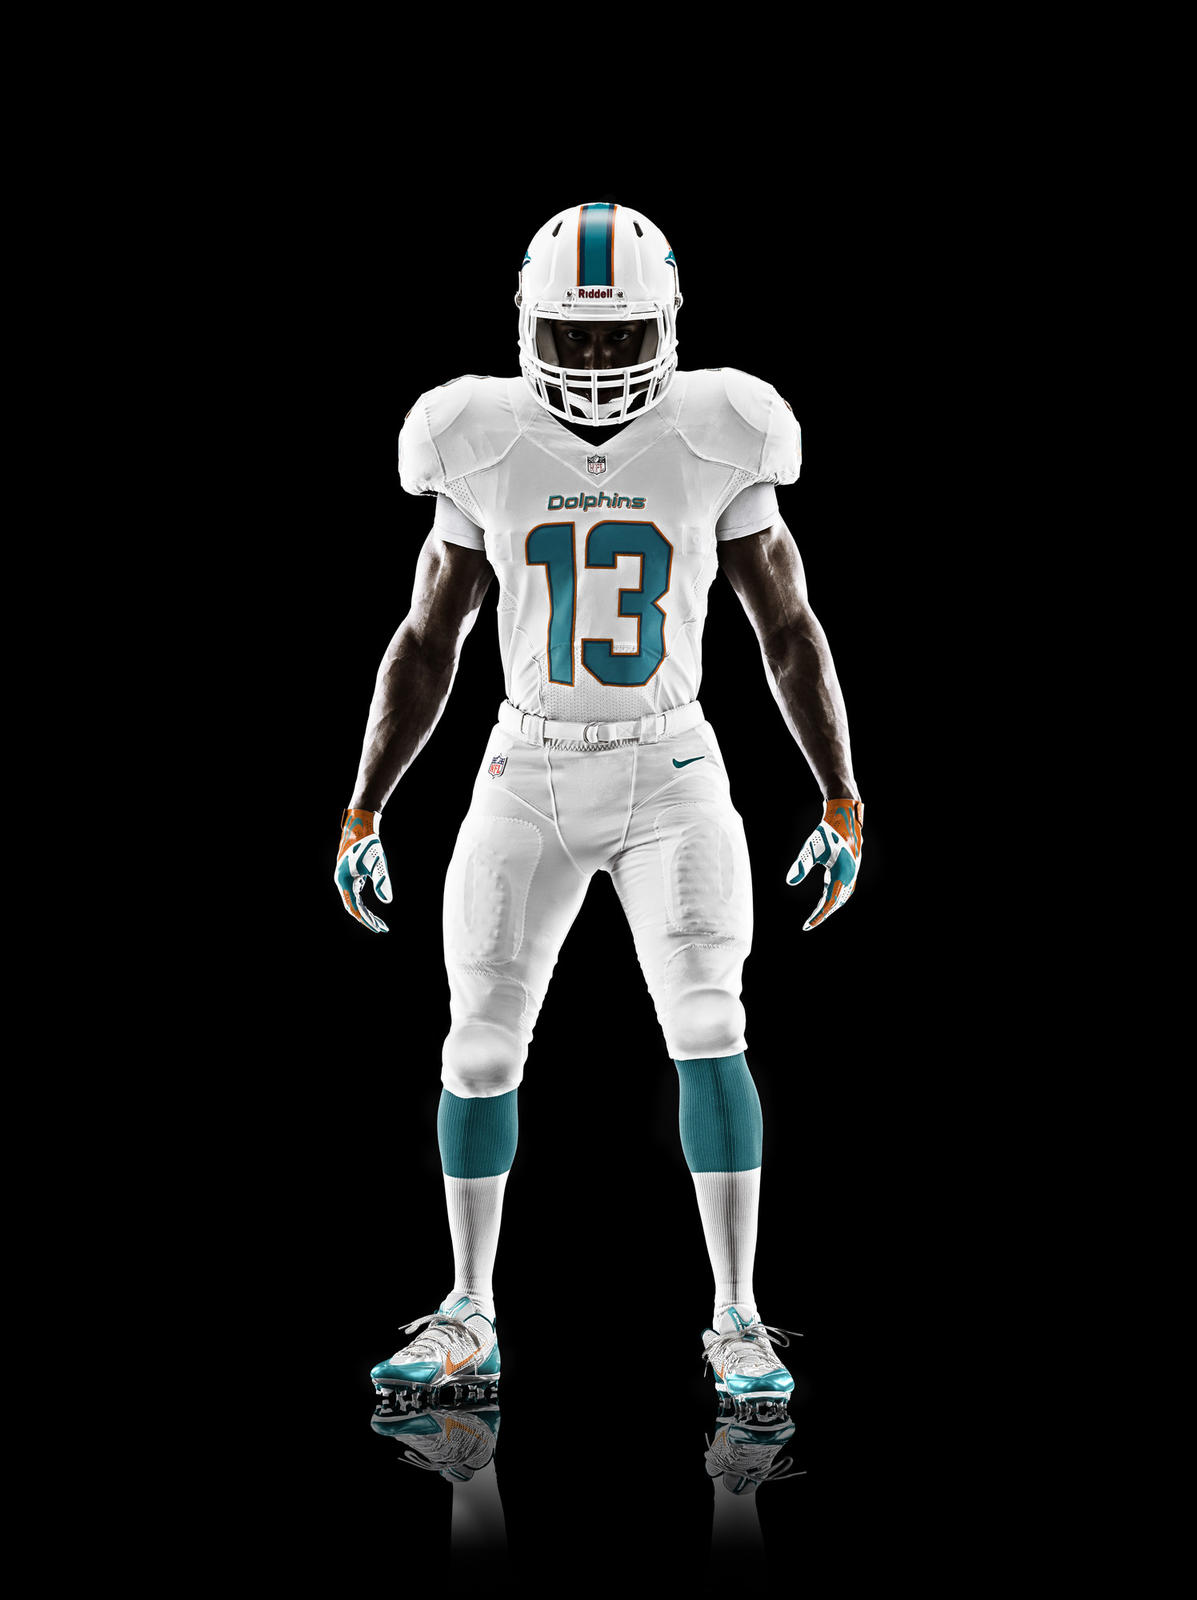 Nike News - Miami Dolphins Unveil New Uniform Design for 2013 Season